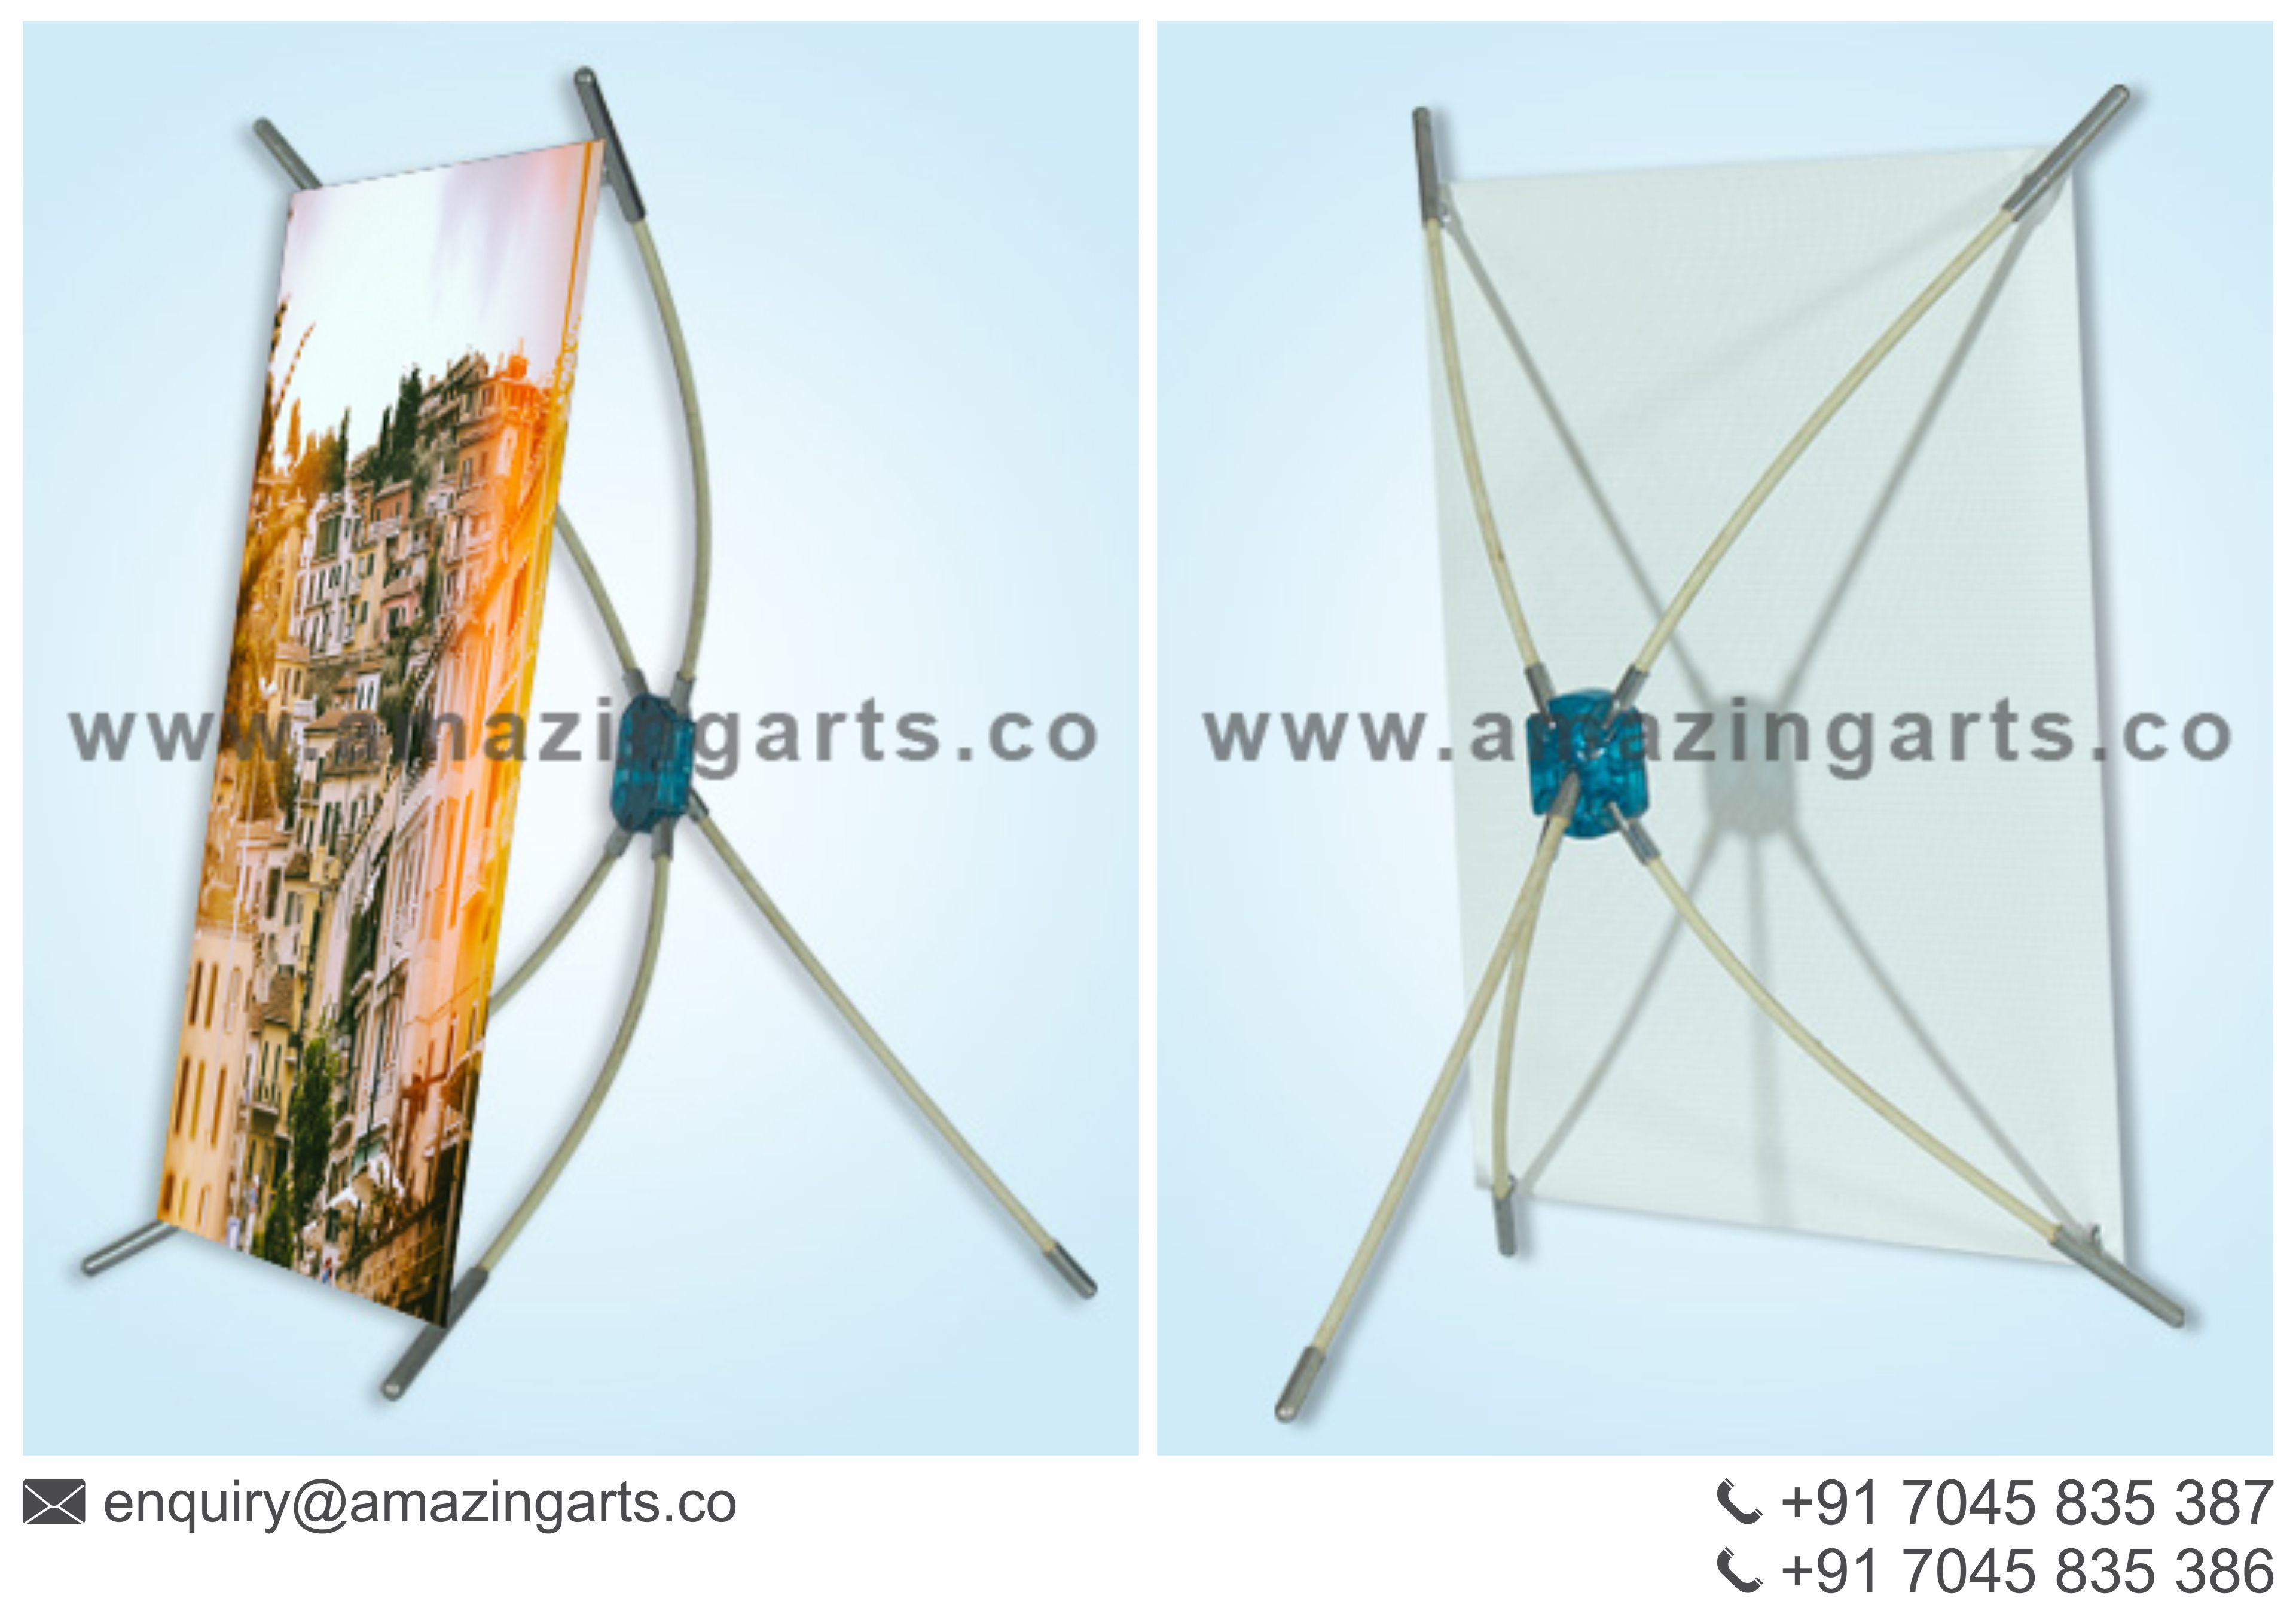 Exhibition Stall Height : Portable exhibition stall portable exhibition kit popup kit